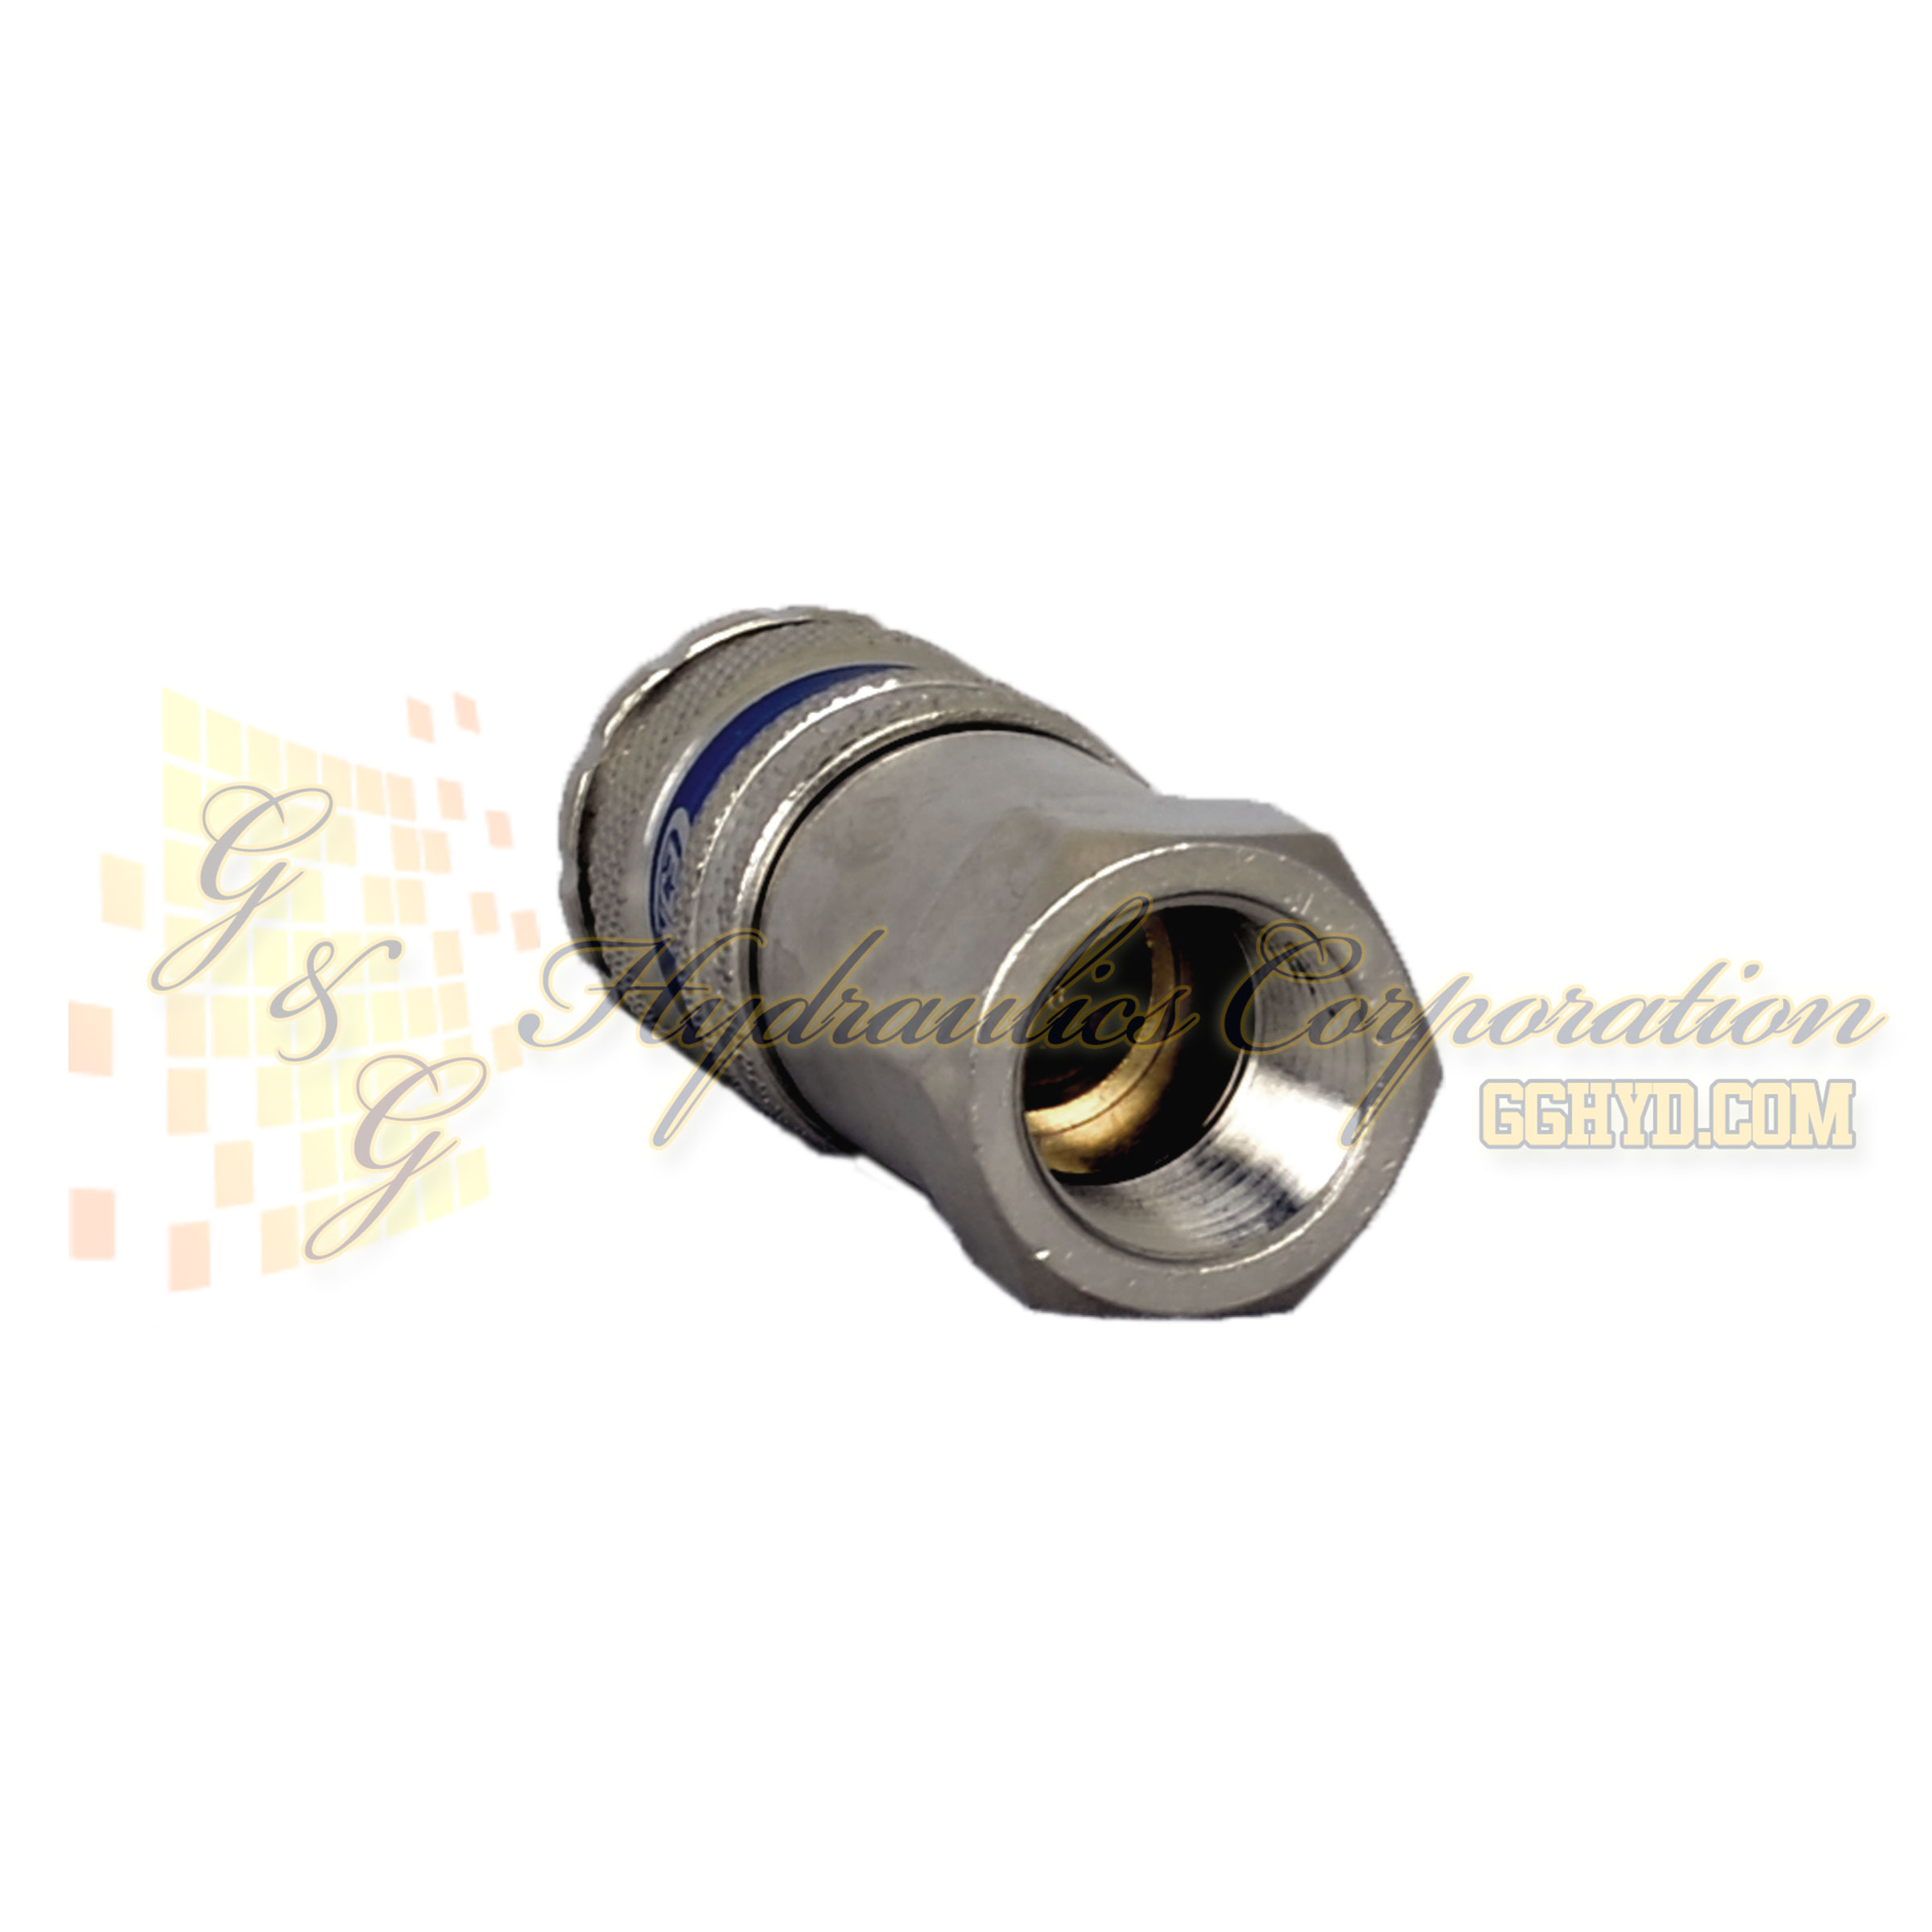 "10-320-1404 CEJN Standard and Vented Safety Coupler, 3/8"" NPT Female Threads"